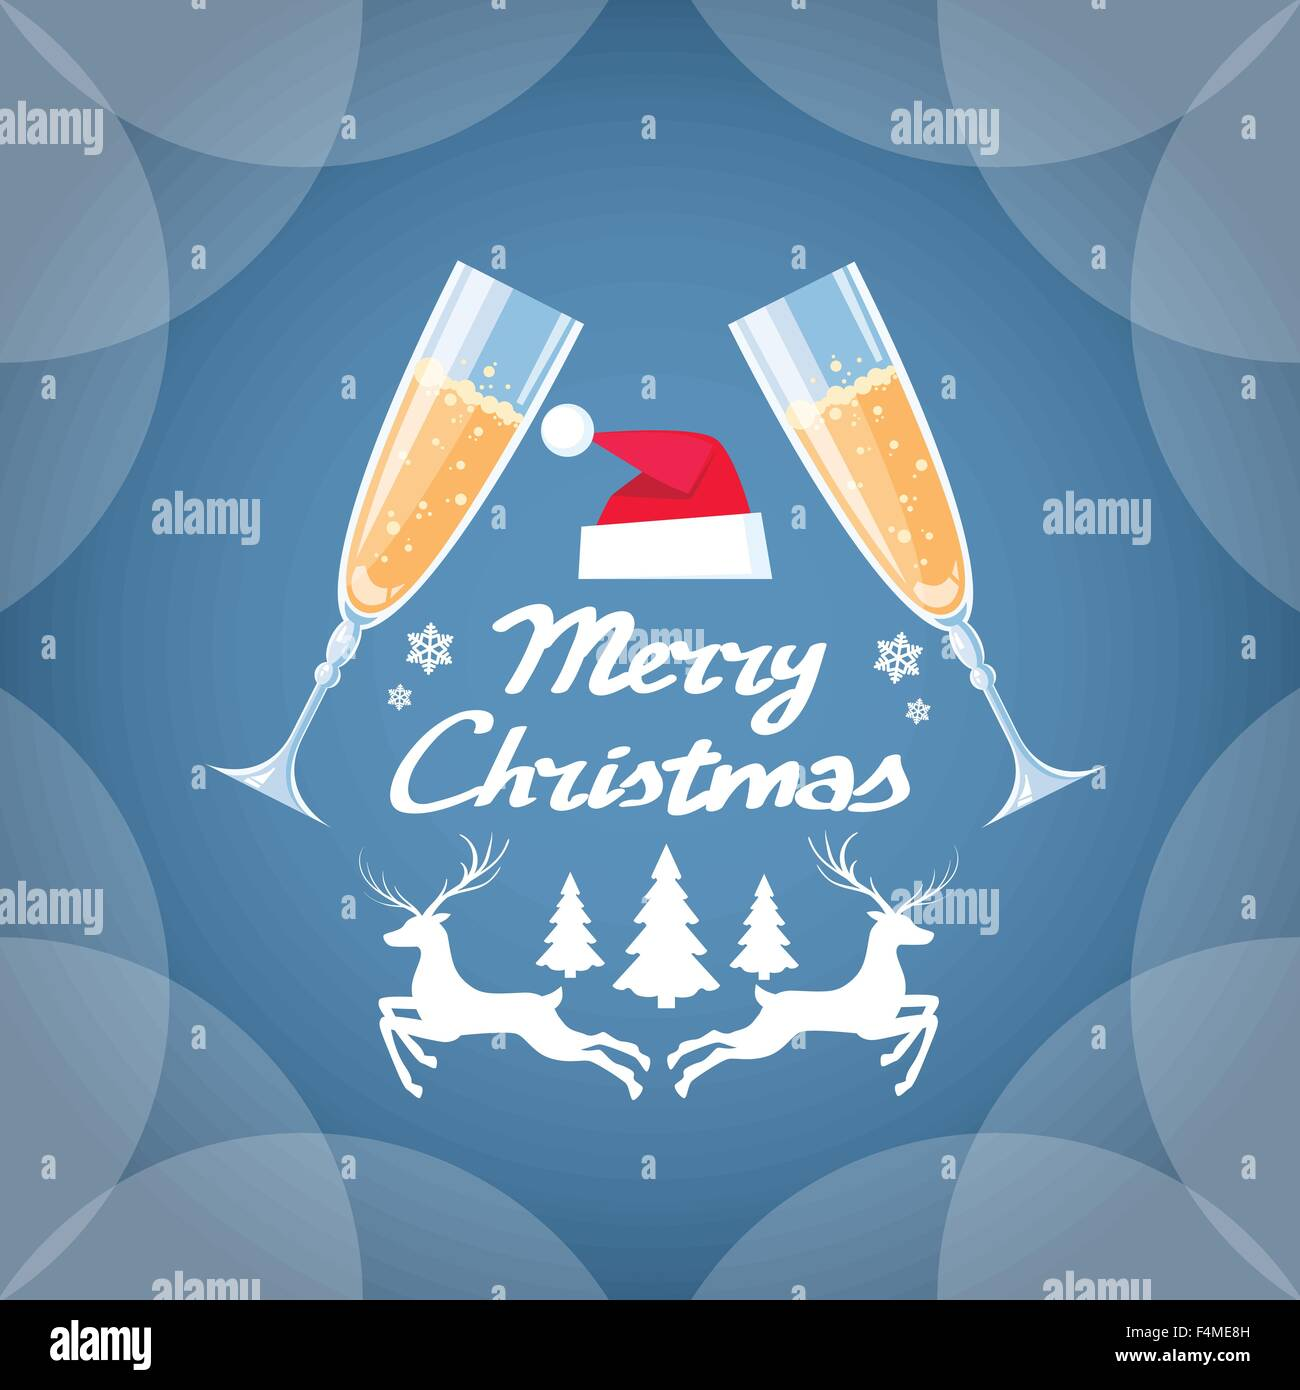 greeting invitation card two glasses champagne toast happy new year merry christmas